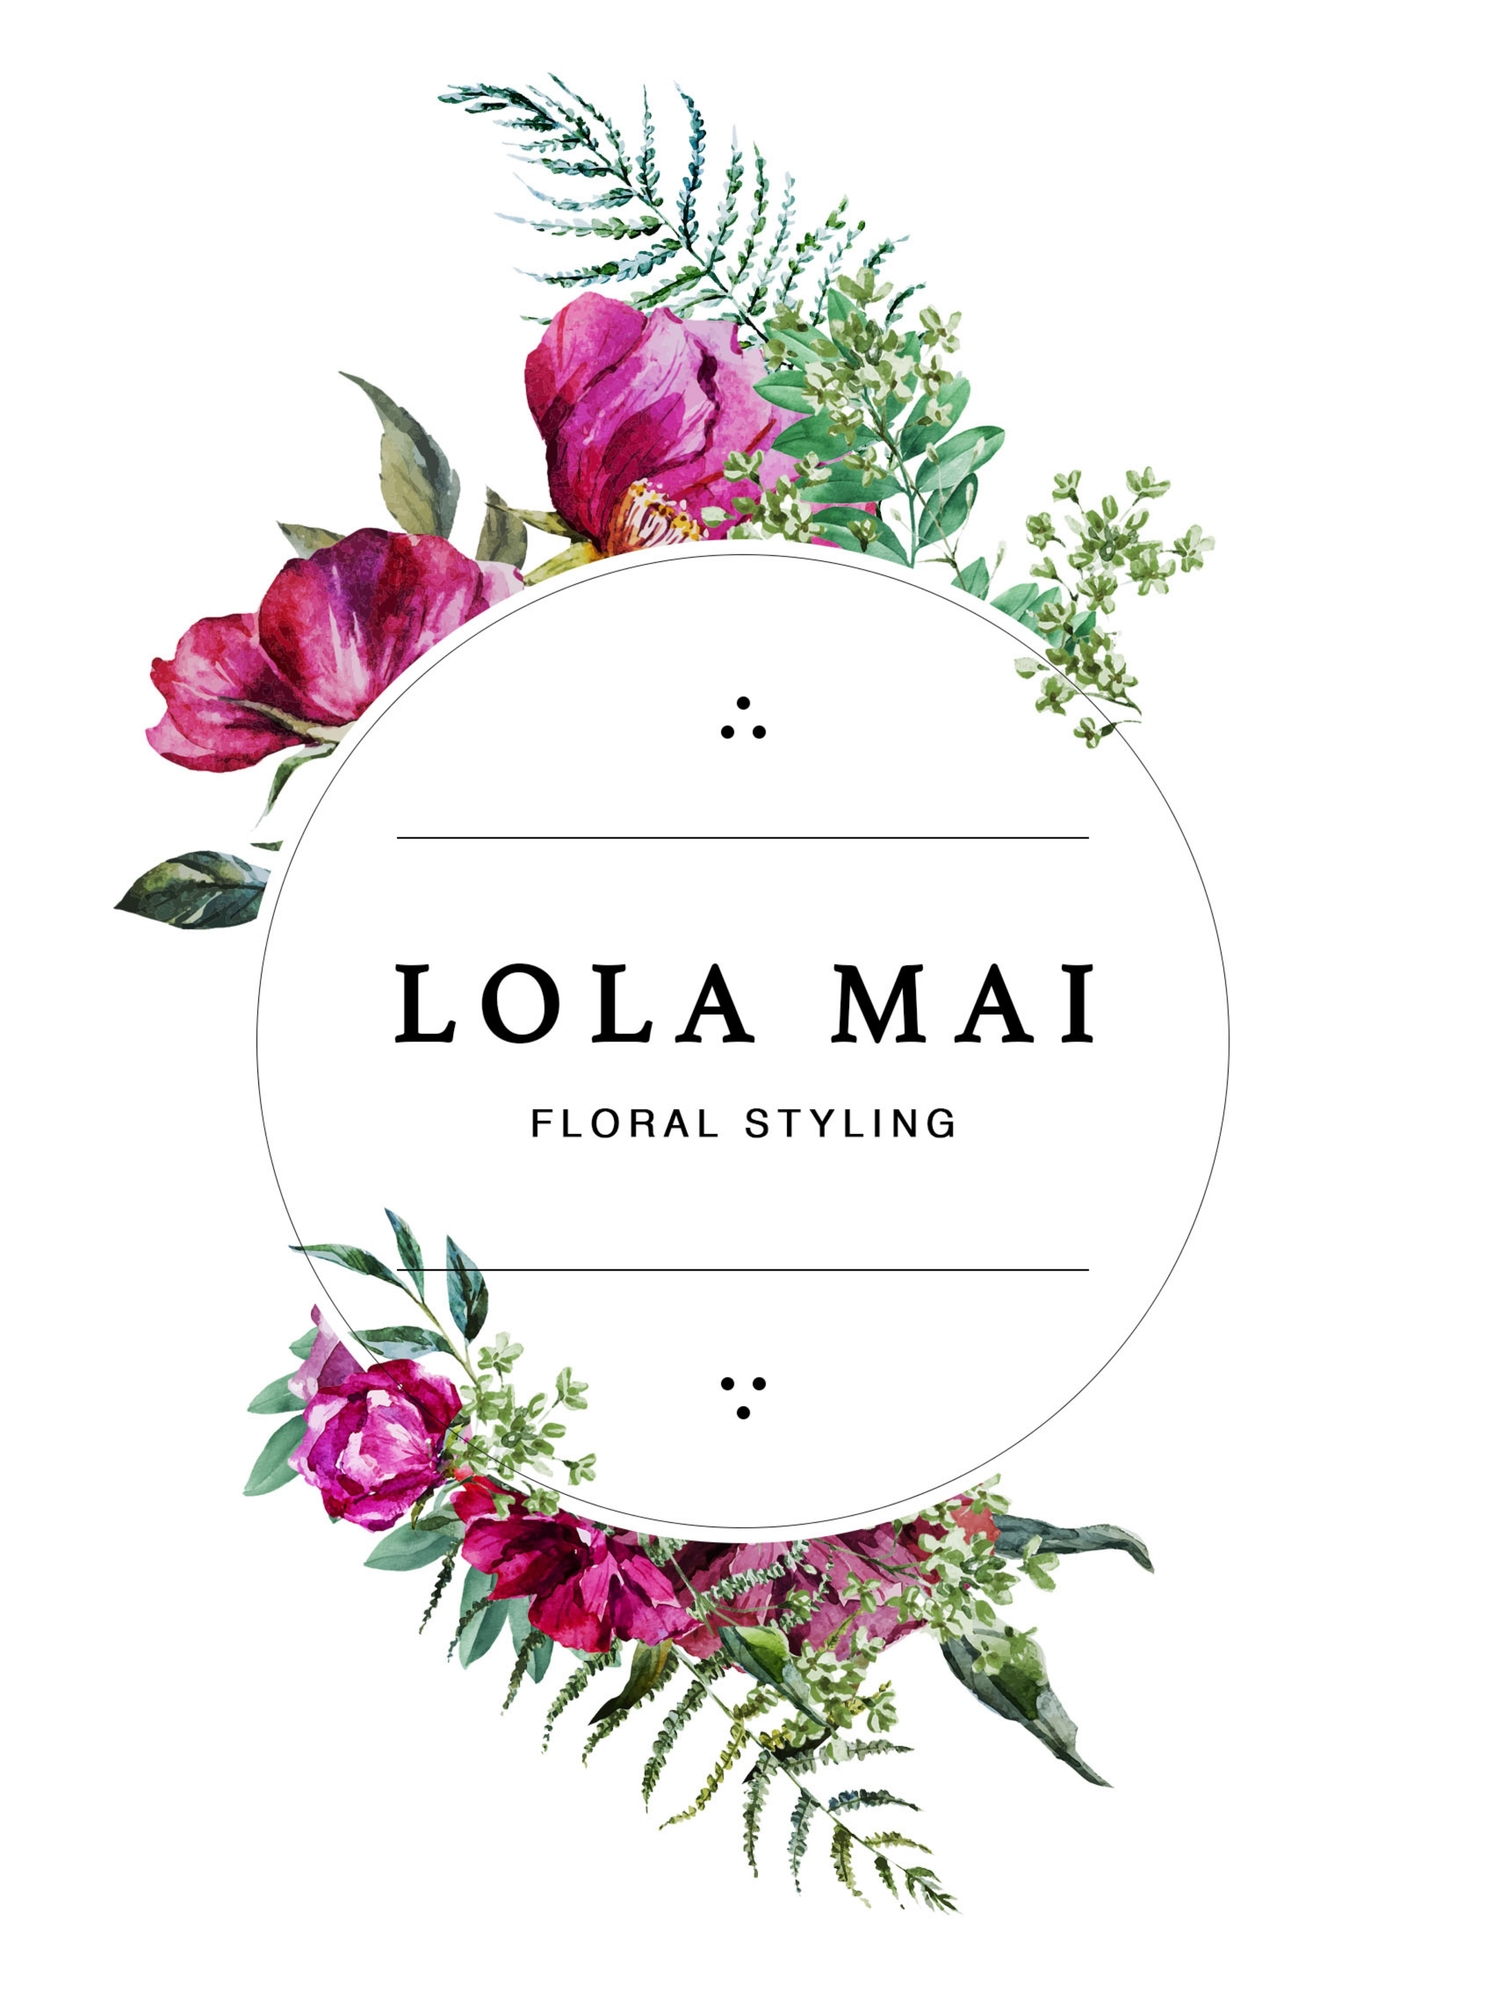 Lola Mai Floral Styling